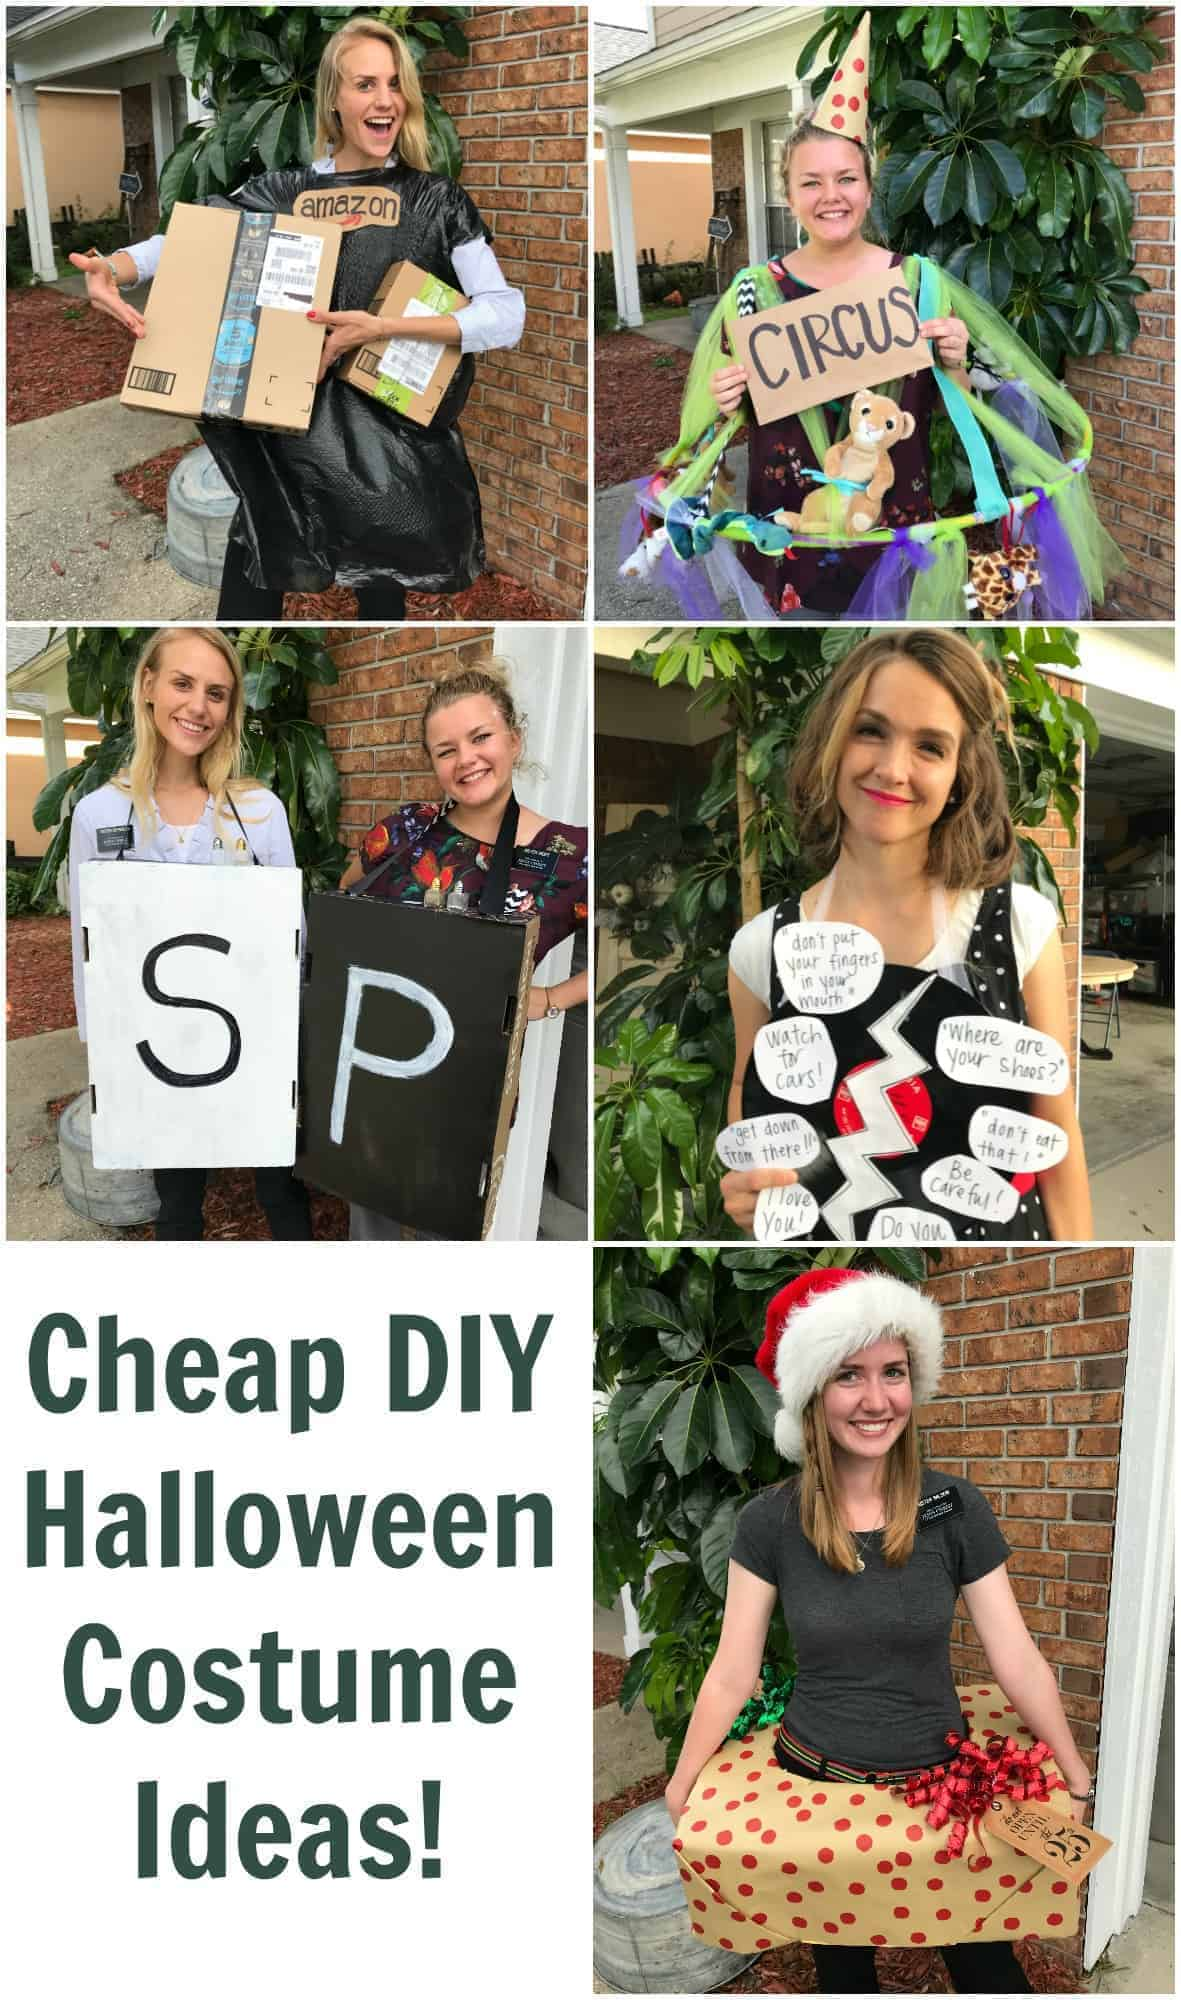 Cheap DIY Halloween costume ideas that are super quick, easy, and very inexpensive to make!